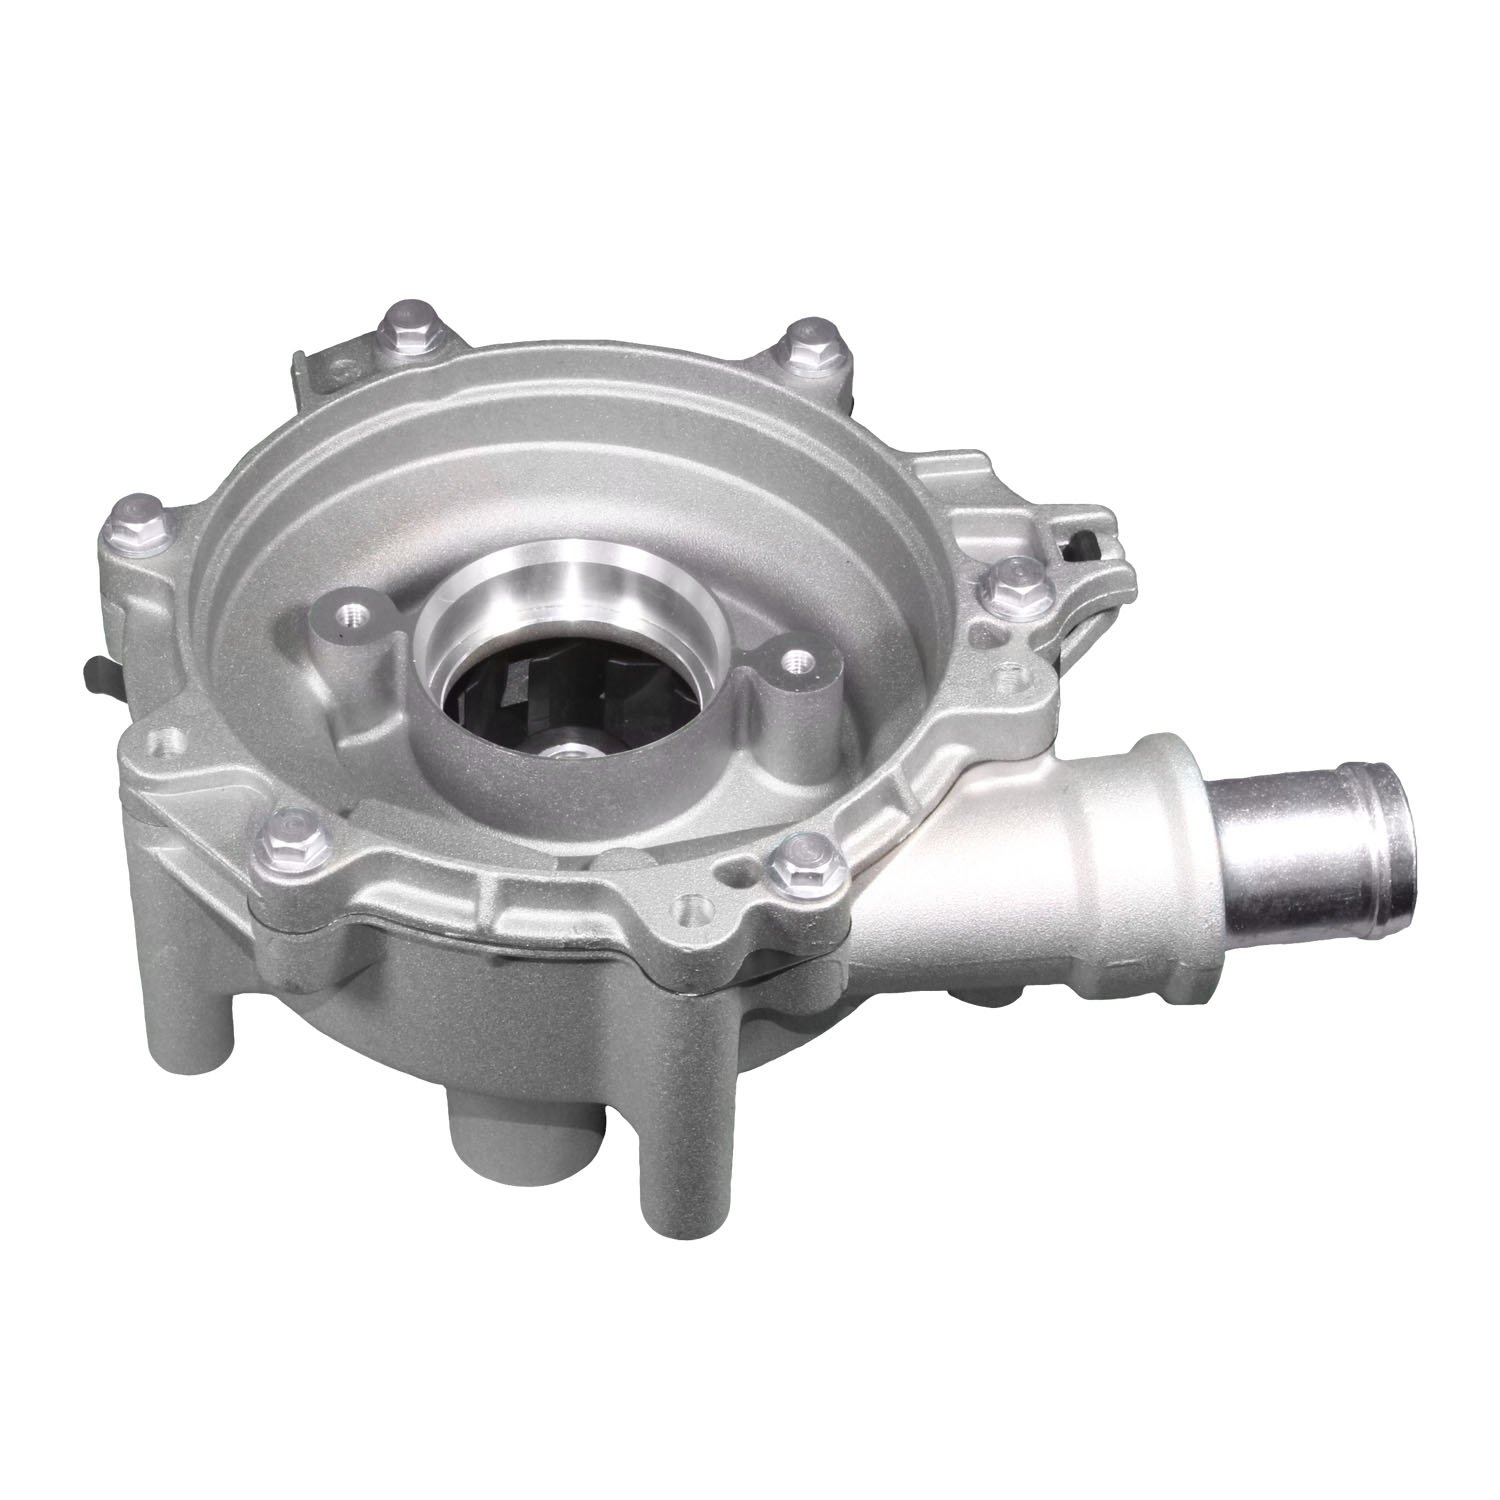 ACDelco 252-964 Professional Water Pump